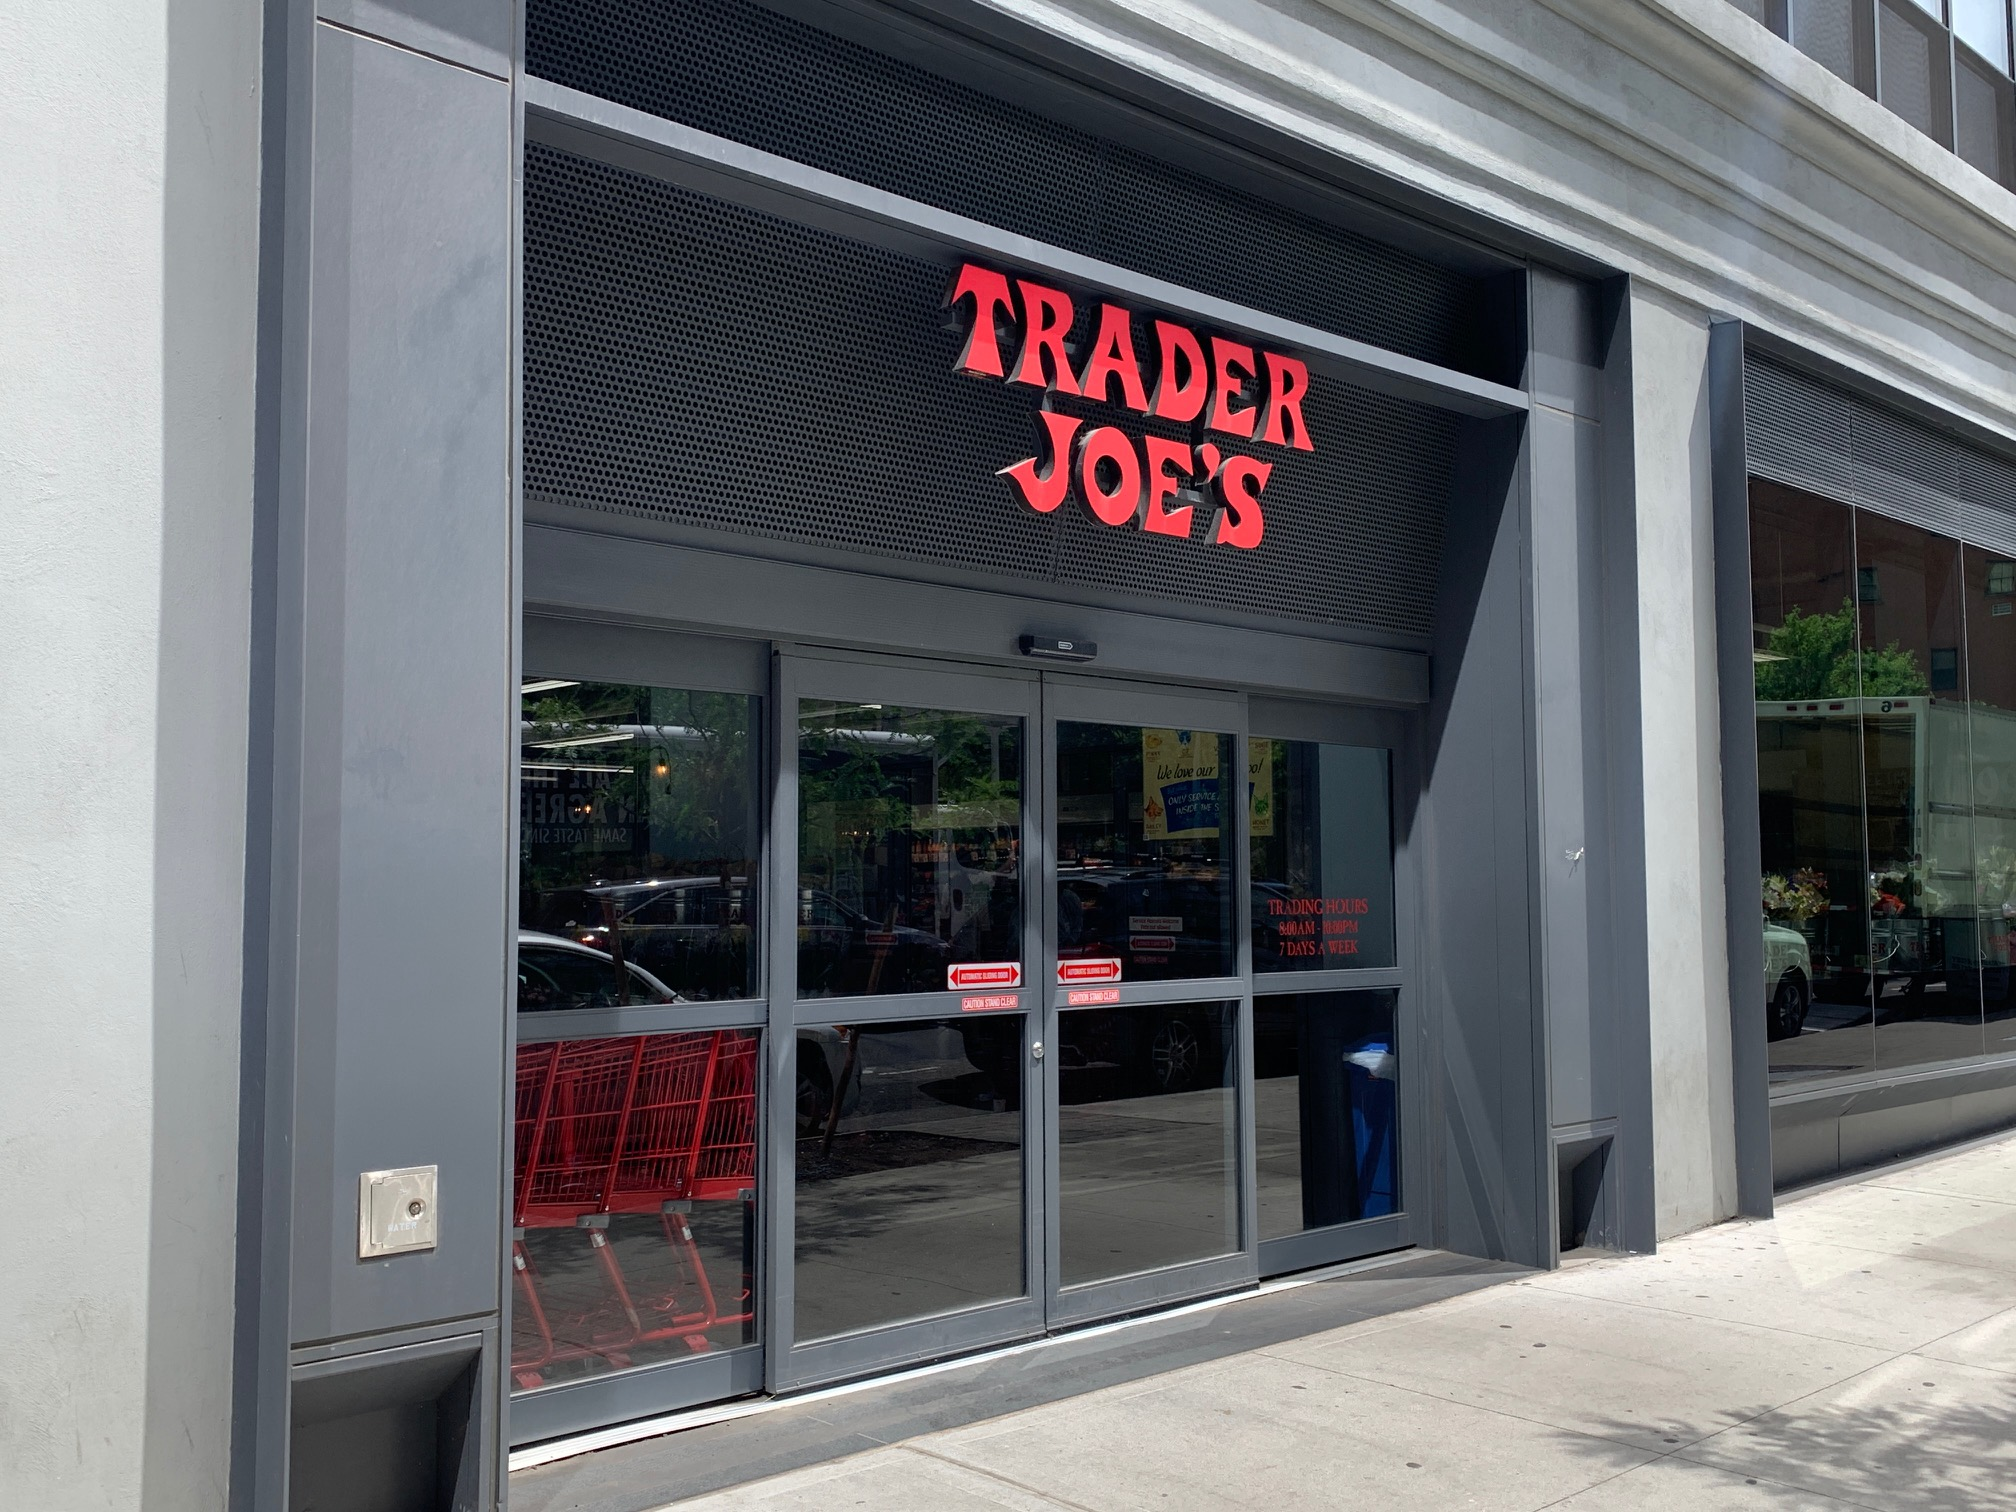 Supermercados em Nova York - Trader Joe's